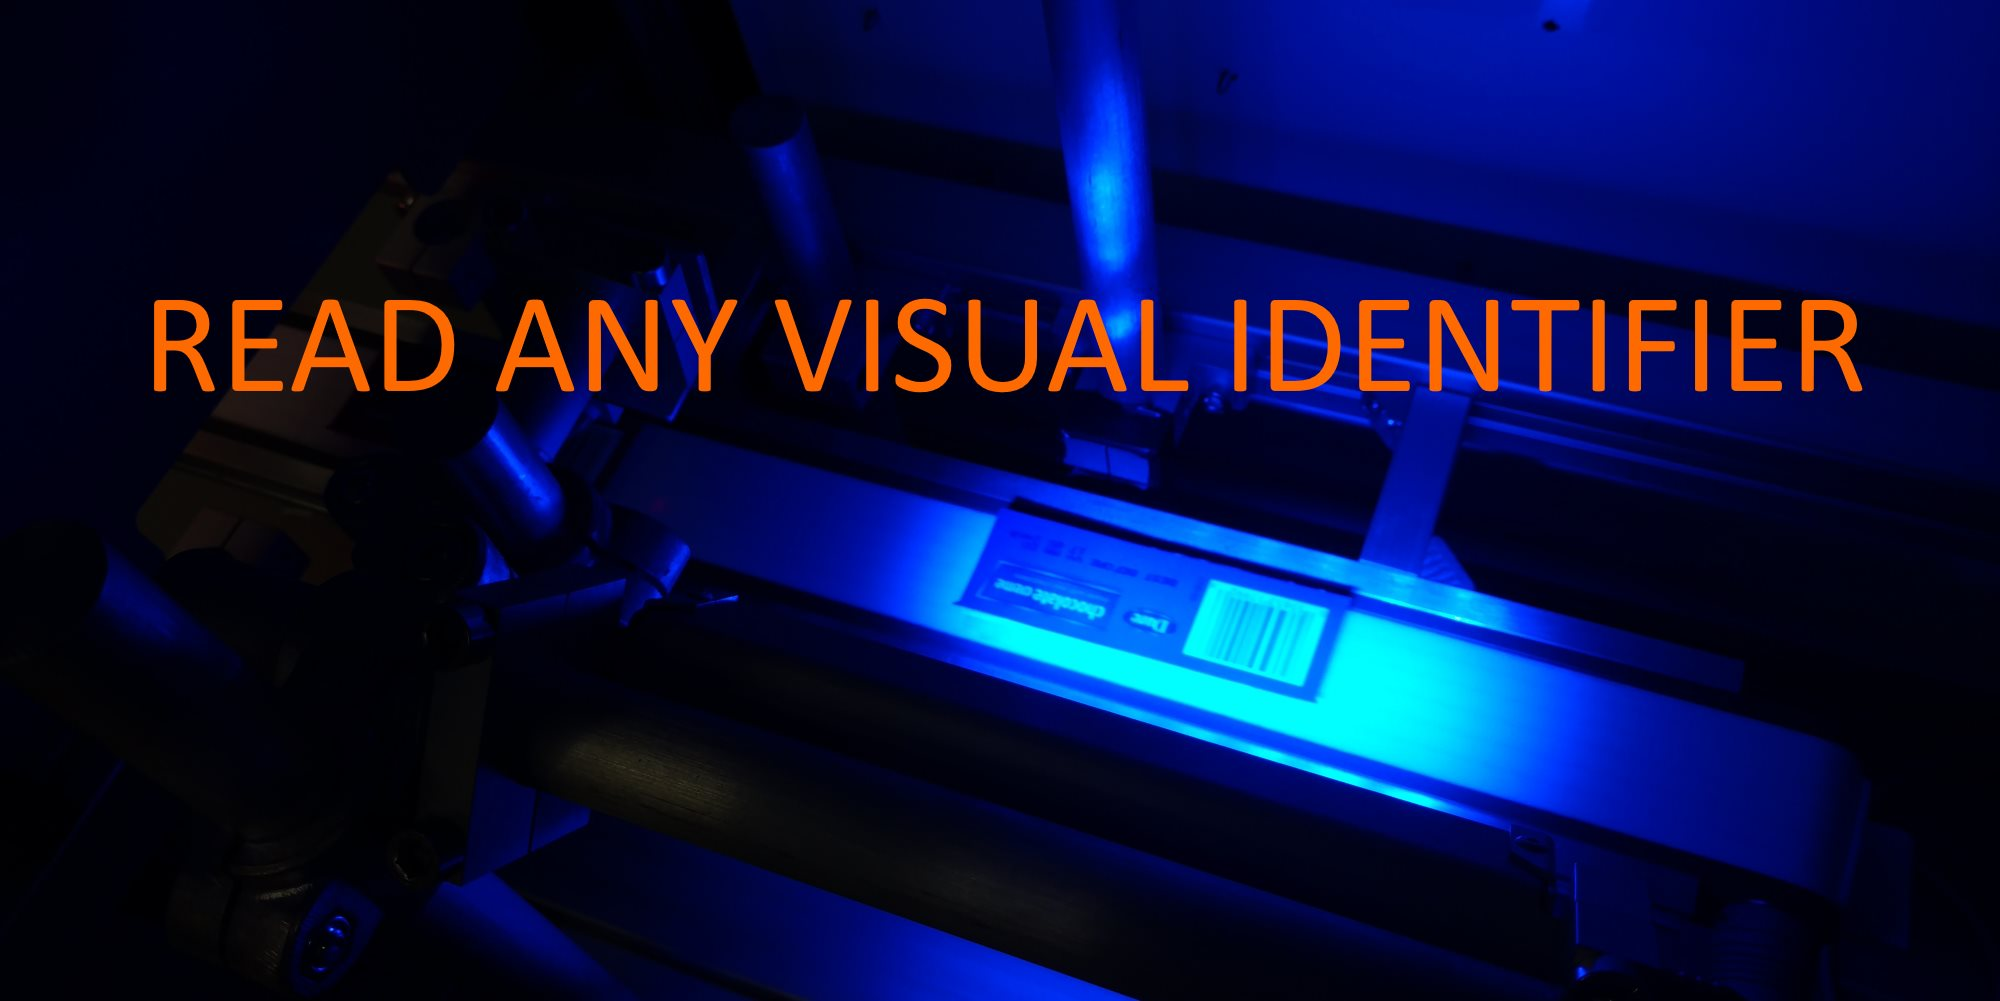 Read any visual identifier: text, barcode, patterns, color